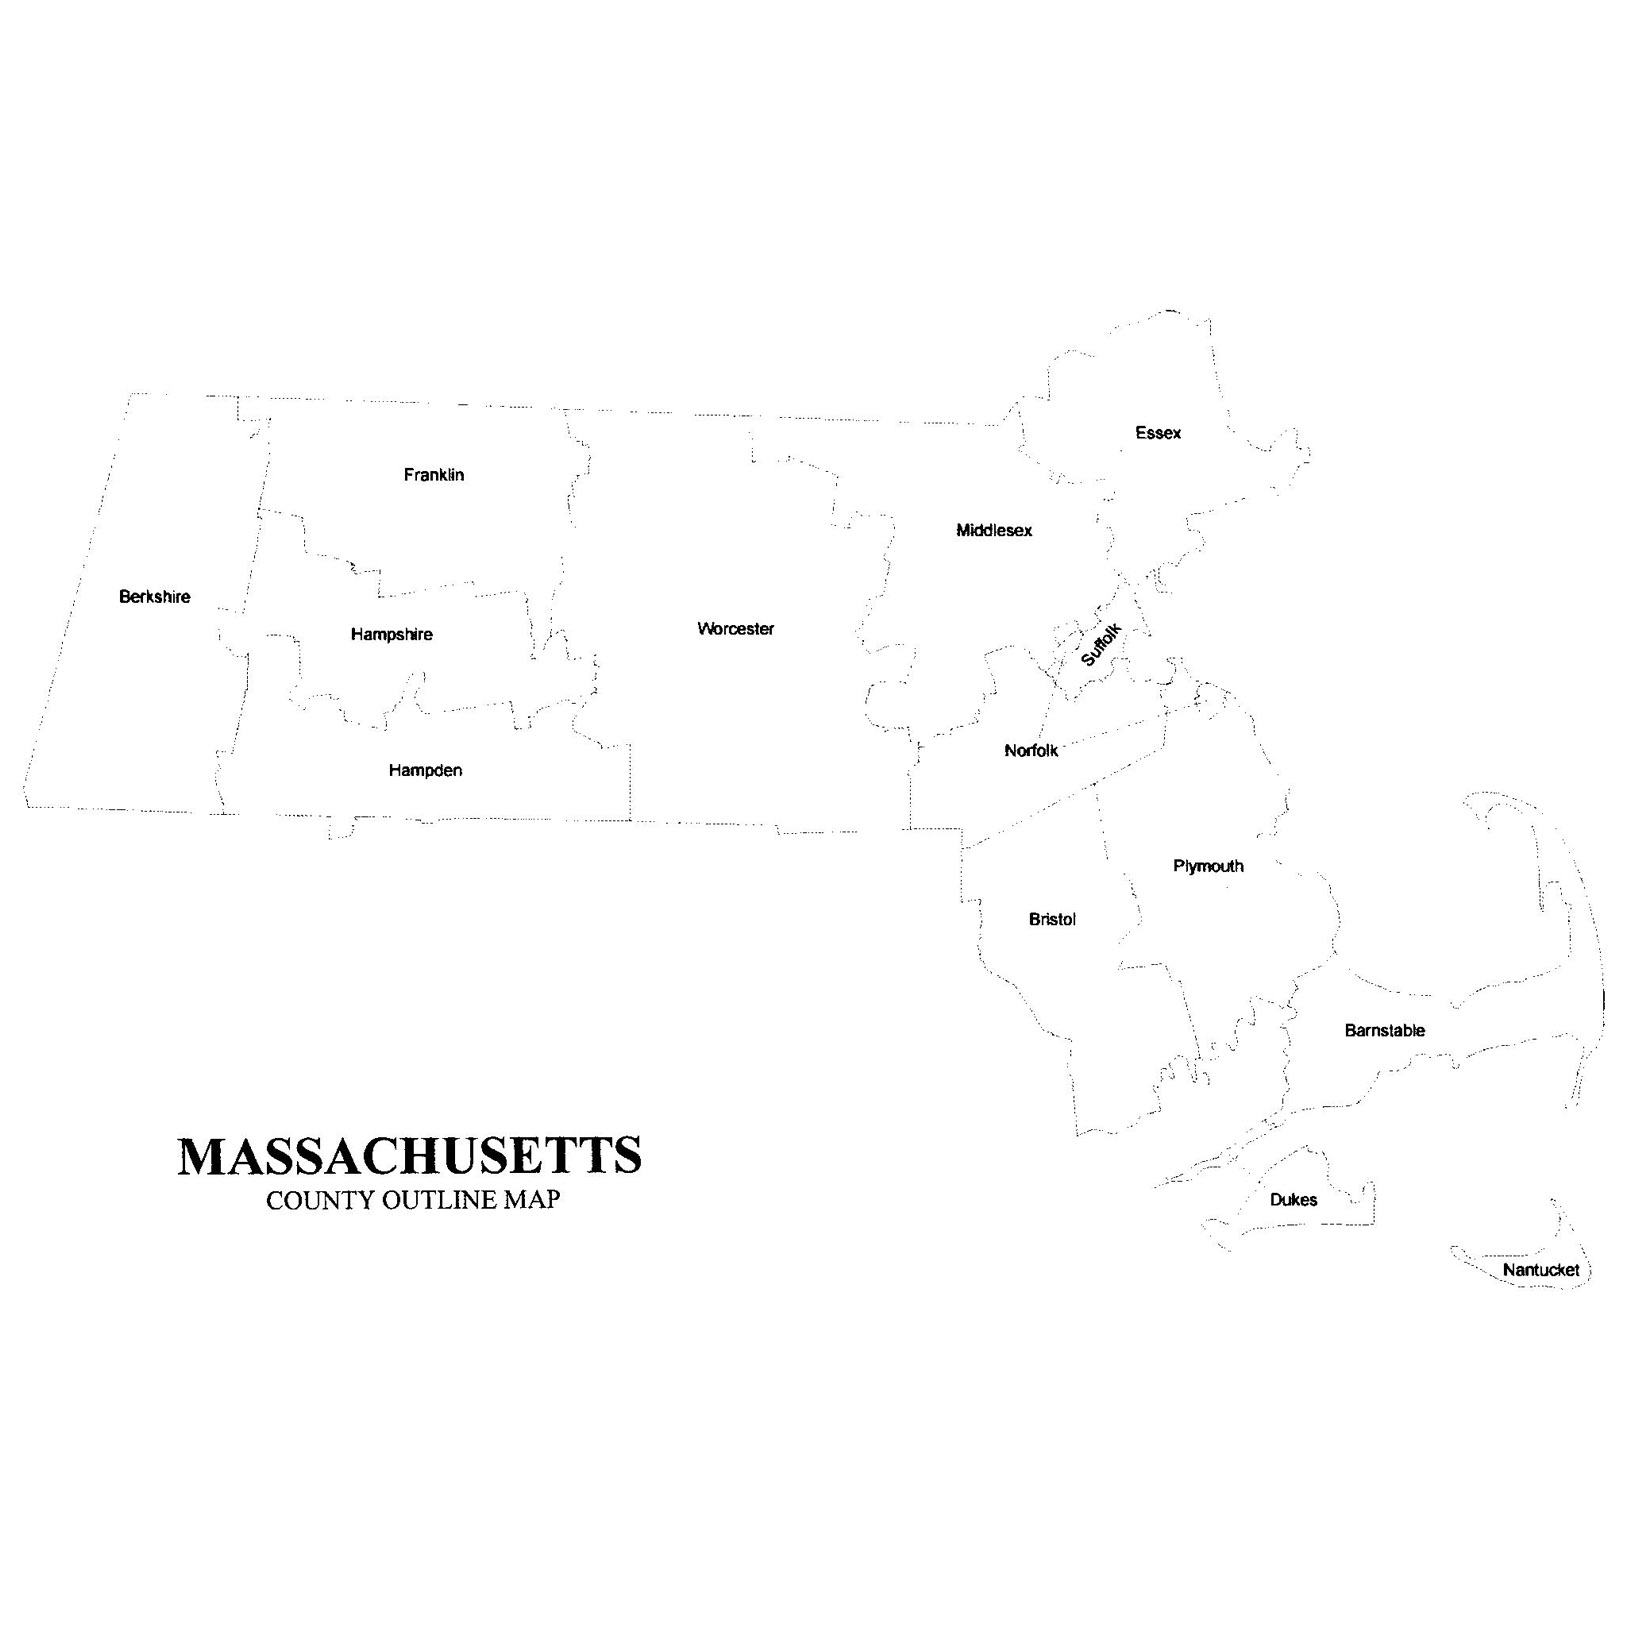 Machusetts County Map – Jigsaw-Genealogy on ma zip code map, ma on us map, haverhill ma map, old saugus ma street map, essex ma map, ma city map, middleton ma map, ma world map, ma highway map, massachusetts map, ma utility map, ma topographical map, ma town map, ma region map, ma physical map, ma island map, ma on a map, ma state police troop map, ma elevation map, ma state parks map,